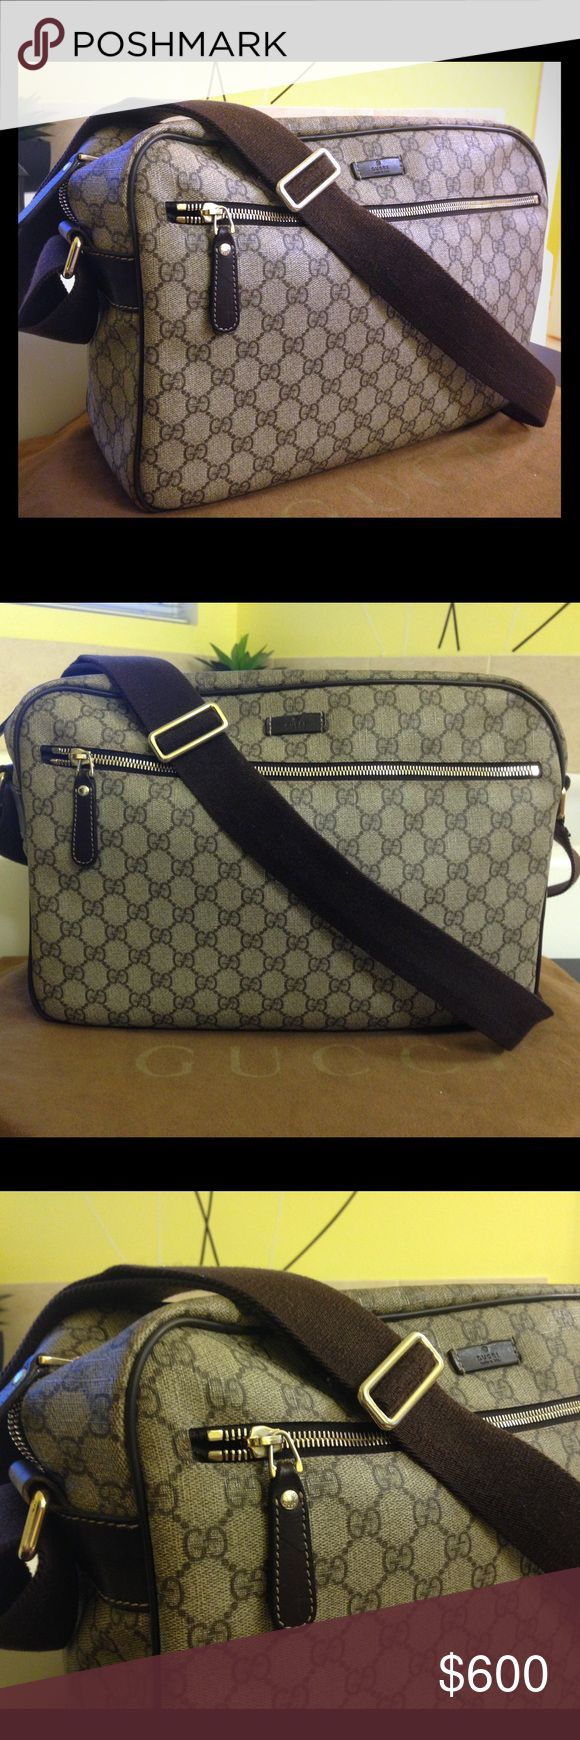 GUCCI messenger bag Monogram GUCCI unisex messenger bag. I had this for a while but still looks stunning as ever. Impeccable craftmanship.have a little sign of wear( shown on the pic ). You'll love this bag for sure.monogram Gucci will forever be classic. Made in Italy with light gold hardware. Comes with the dust bag. Bought from GUCCI store. Gucci Bags Messenger Bags